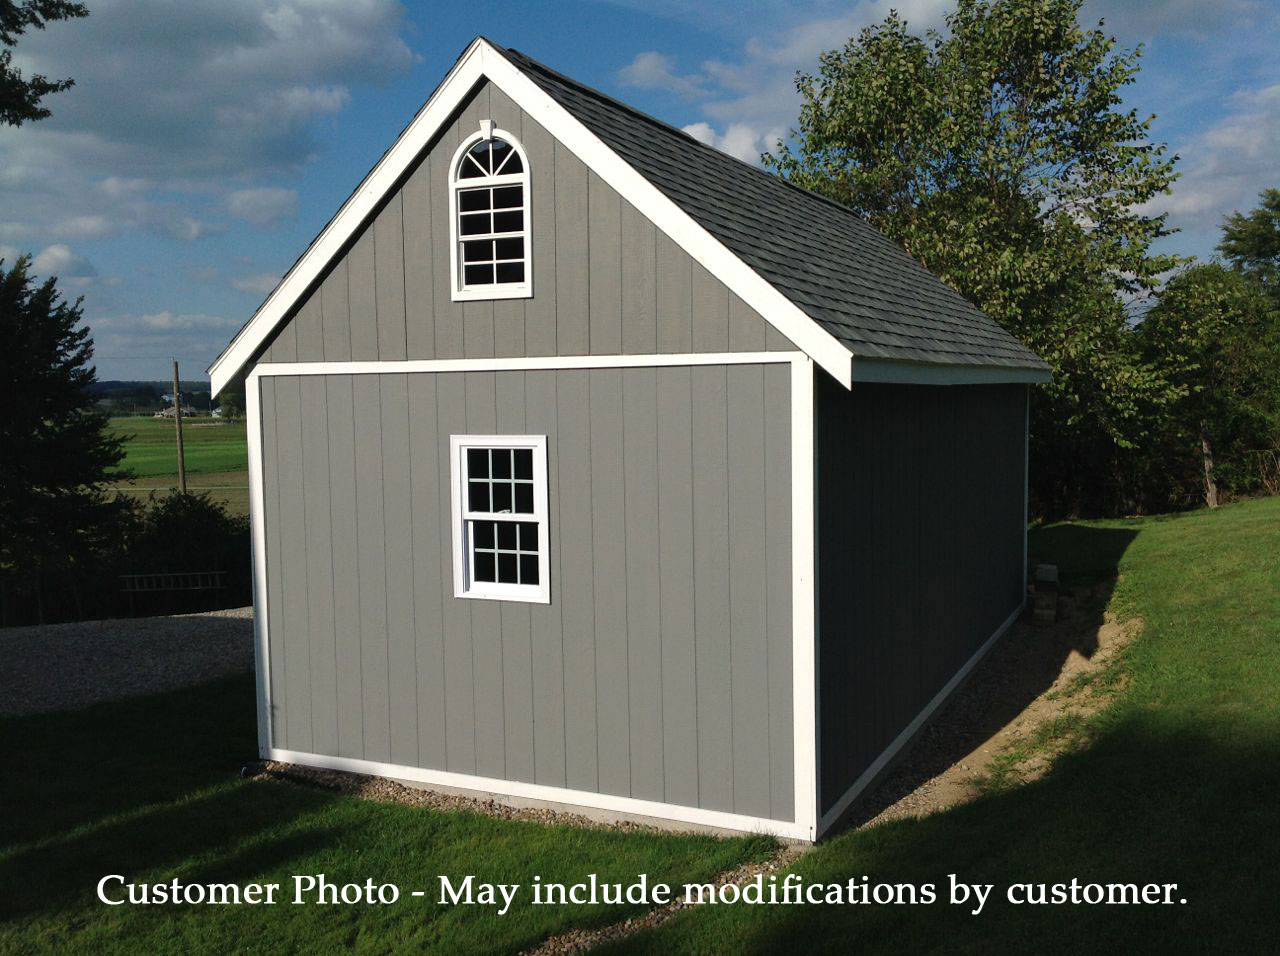 Best Barns Arlington 12x16 Wood Shed Kit On Sale With Fast